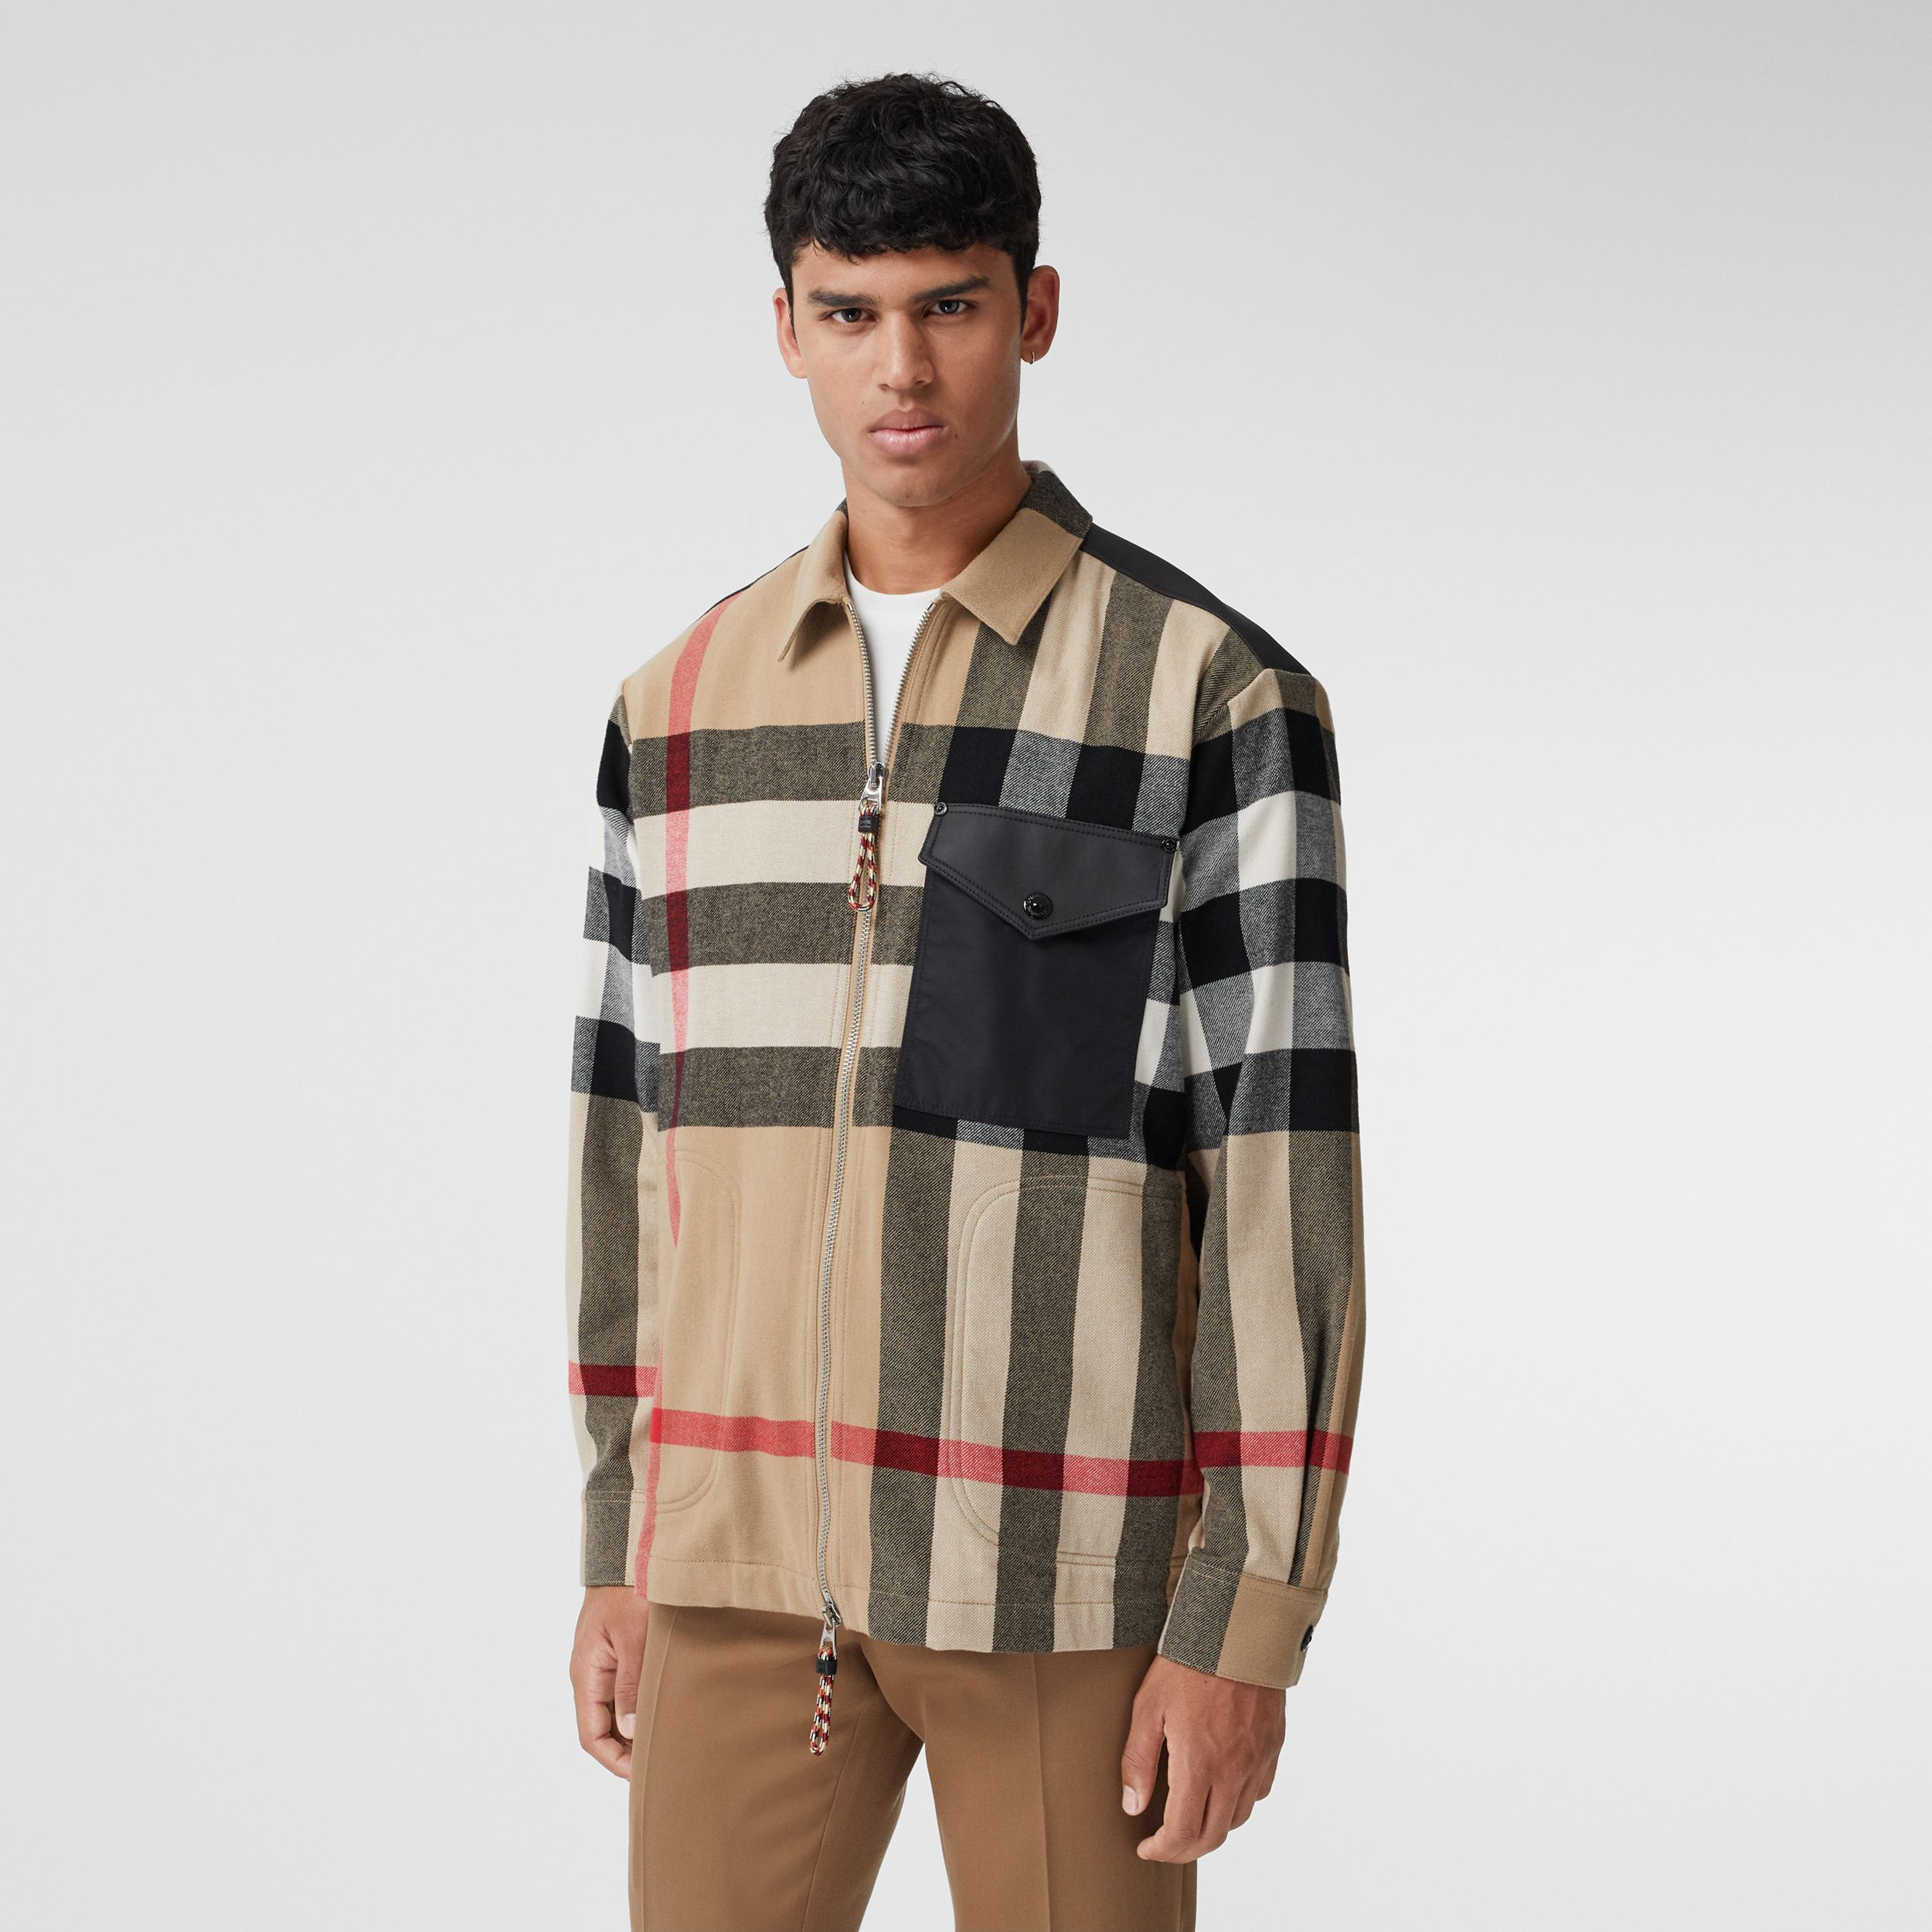 Contrast Panel Check Wool Cotton Shirt in Archive Beige - Men | Burberry Canada - 1